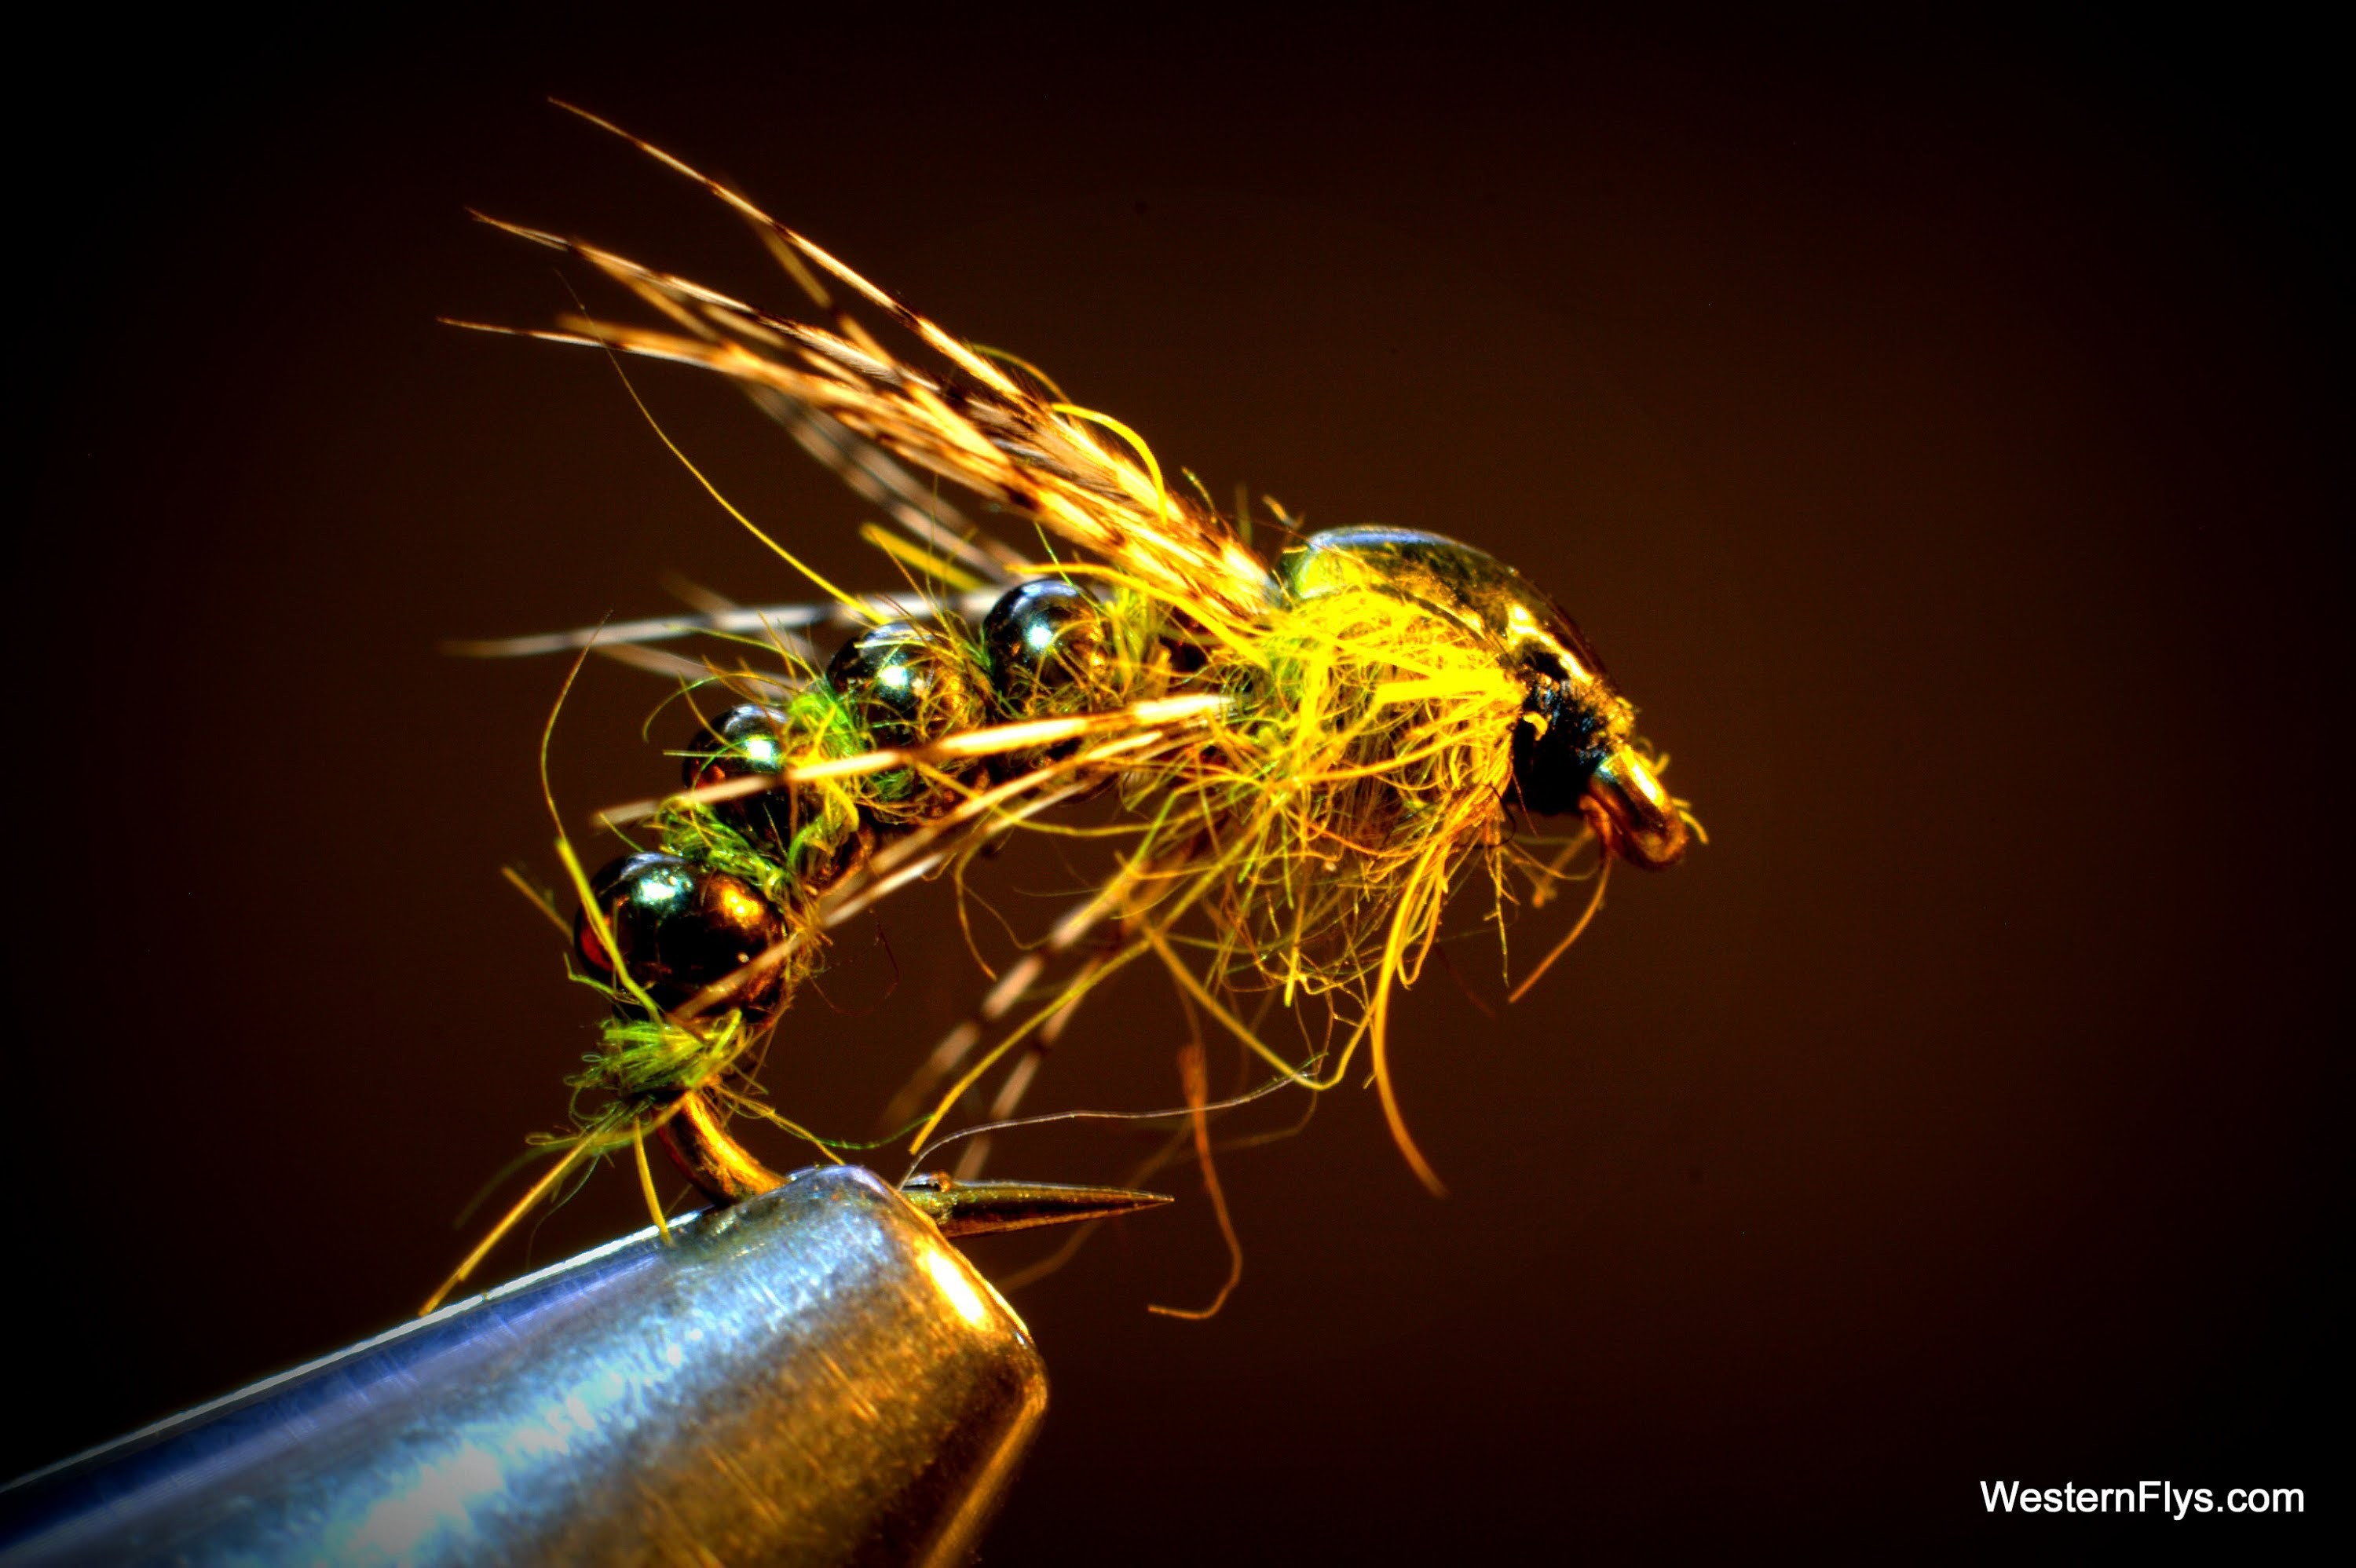 Seed Bead Caddis Emerger